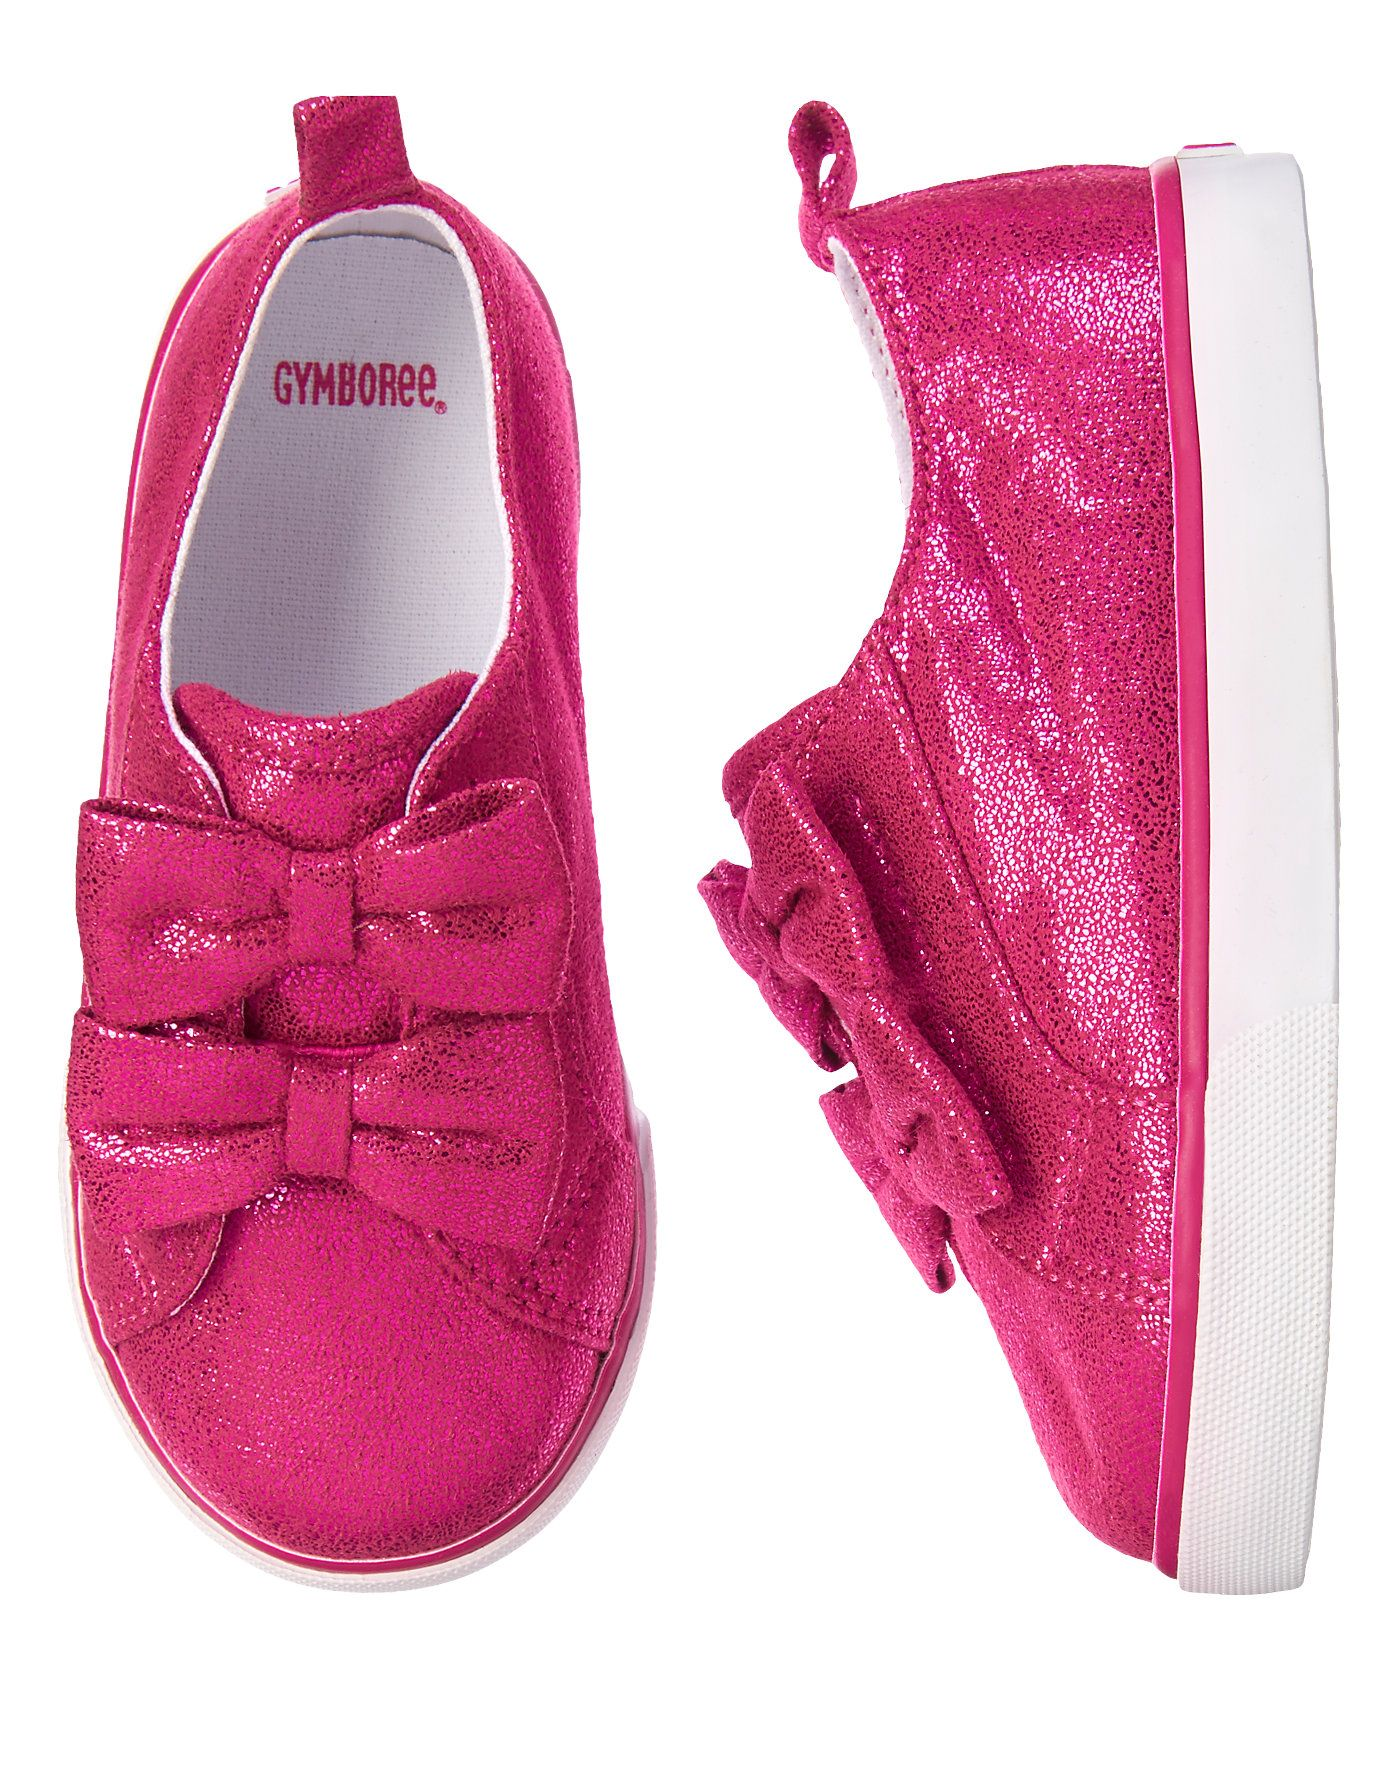 Sparkle Bow Sneakers at Gymboree Kids clothes